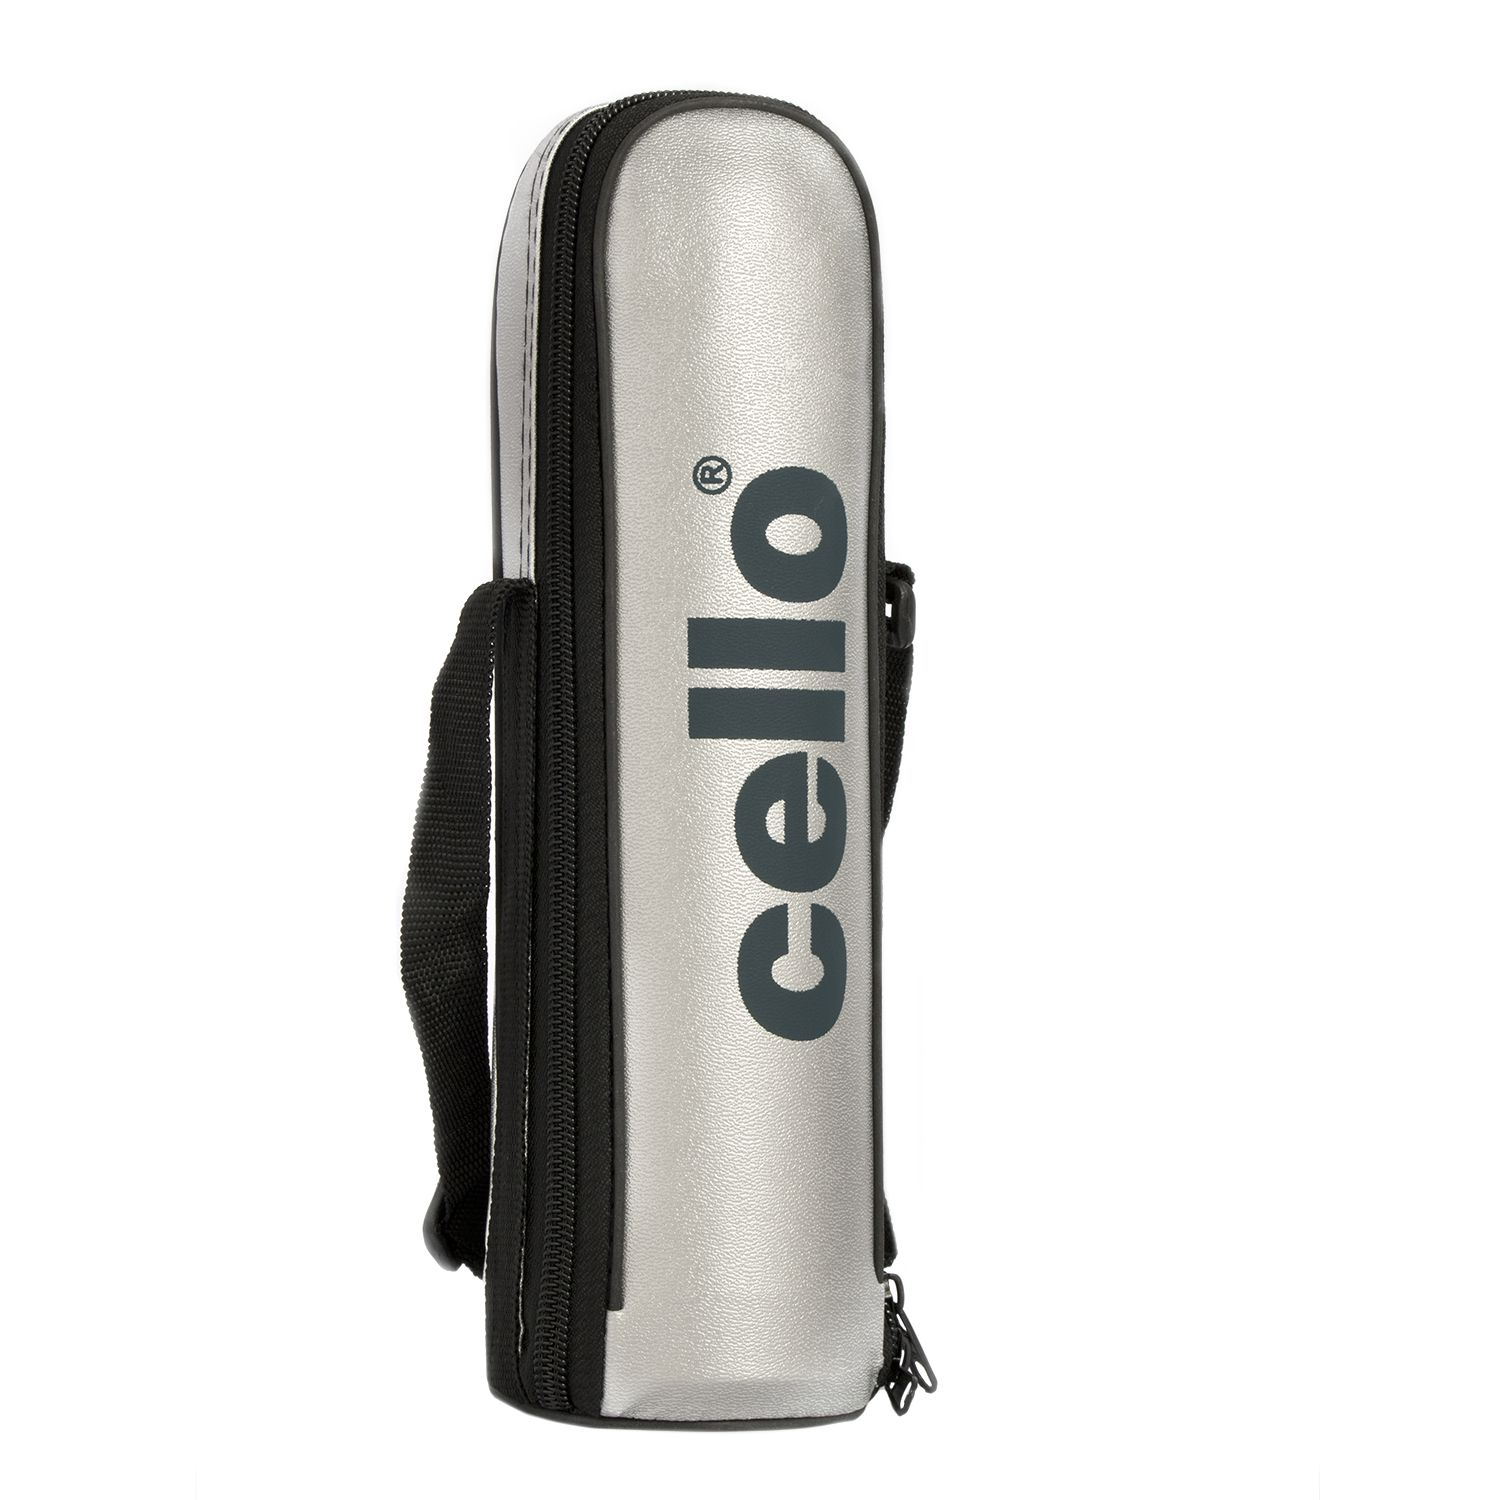 Cello Lifestyle Stainless Steel Flask 1000 ml Buy line at